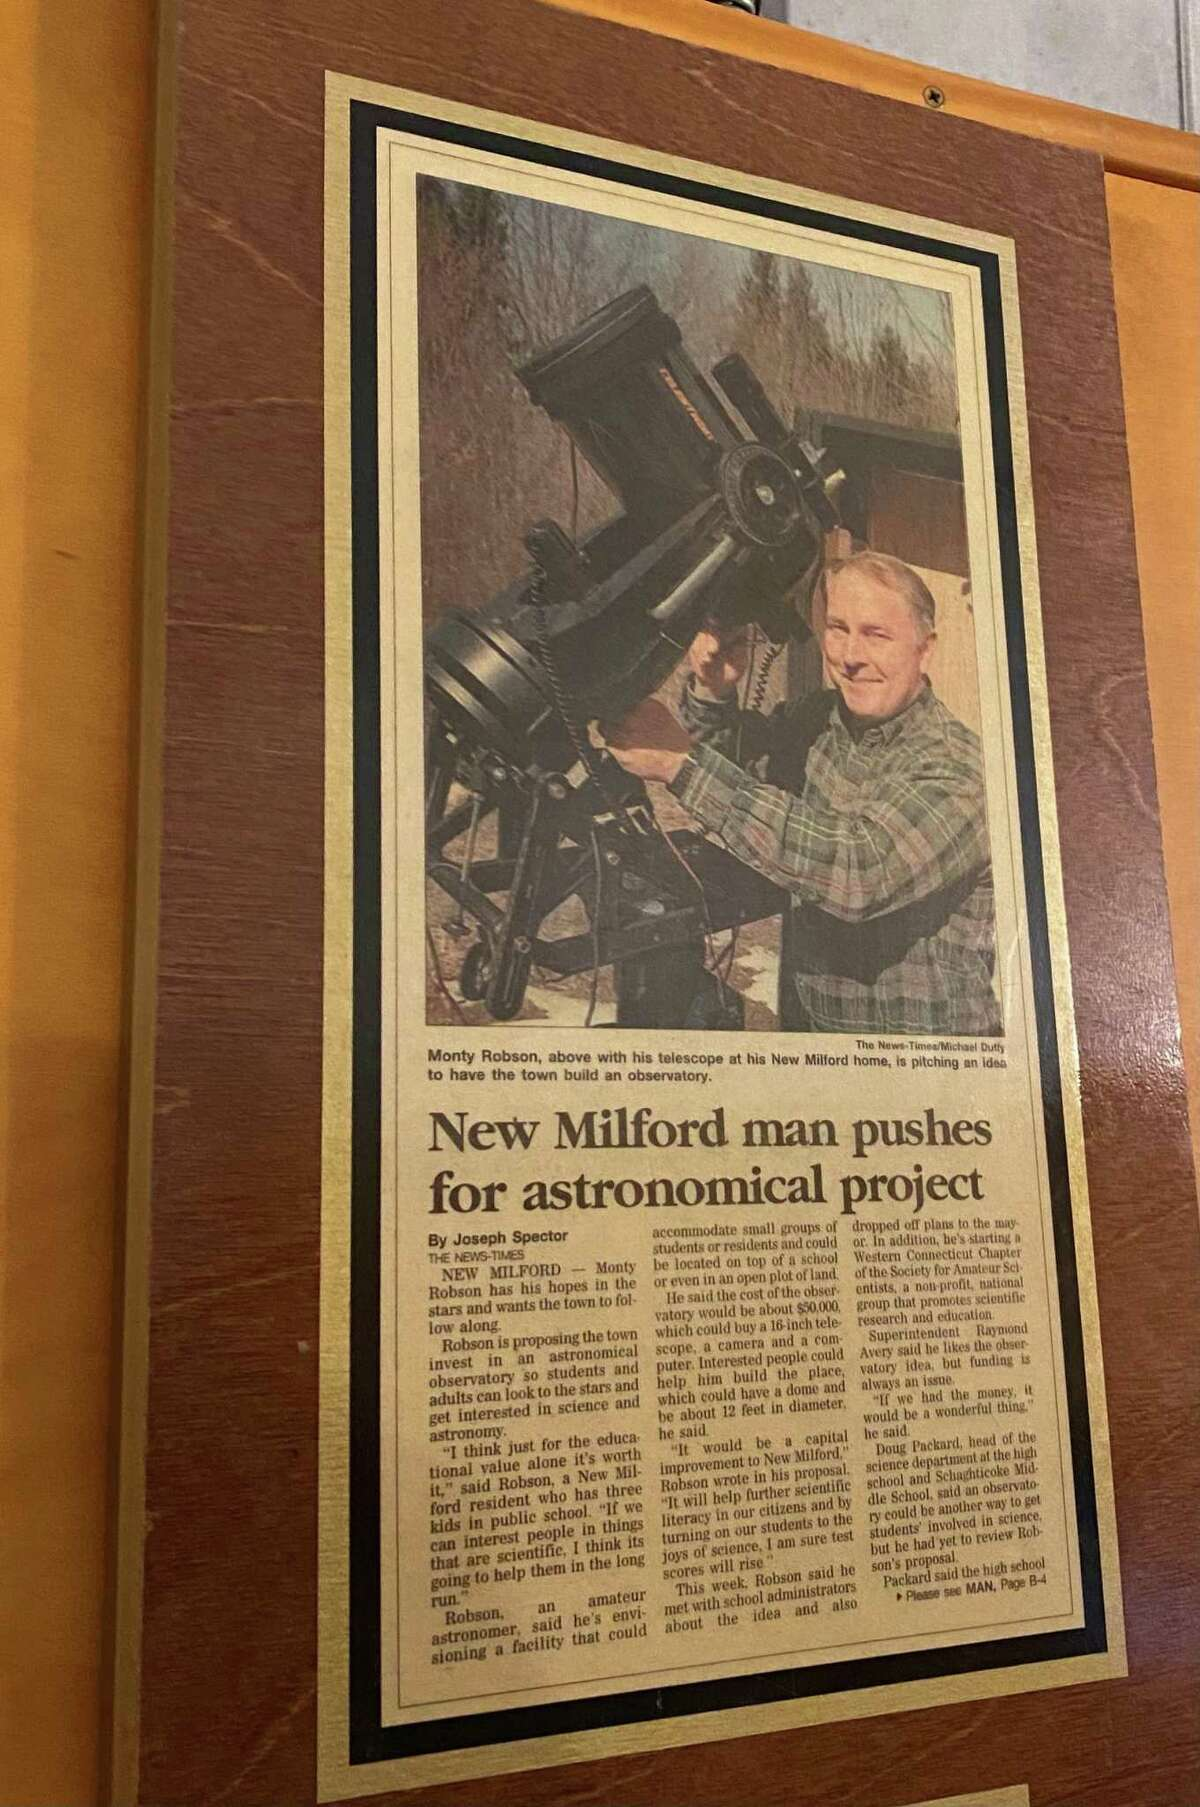 An article about Monty Robson's interest in building an observatory in town sparked widespread interest in the community. The article hangs in the observatory as a reminder to how dreams can come true.